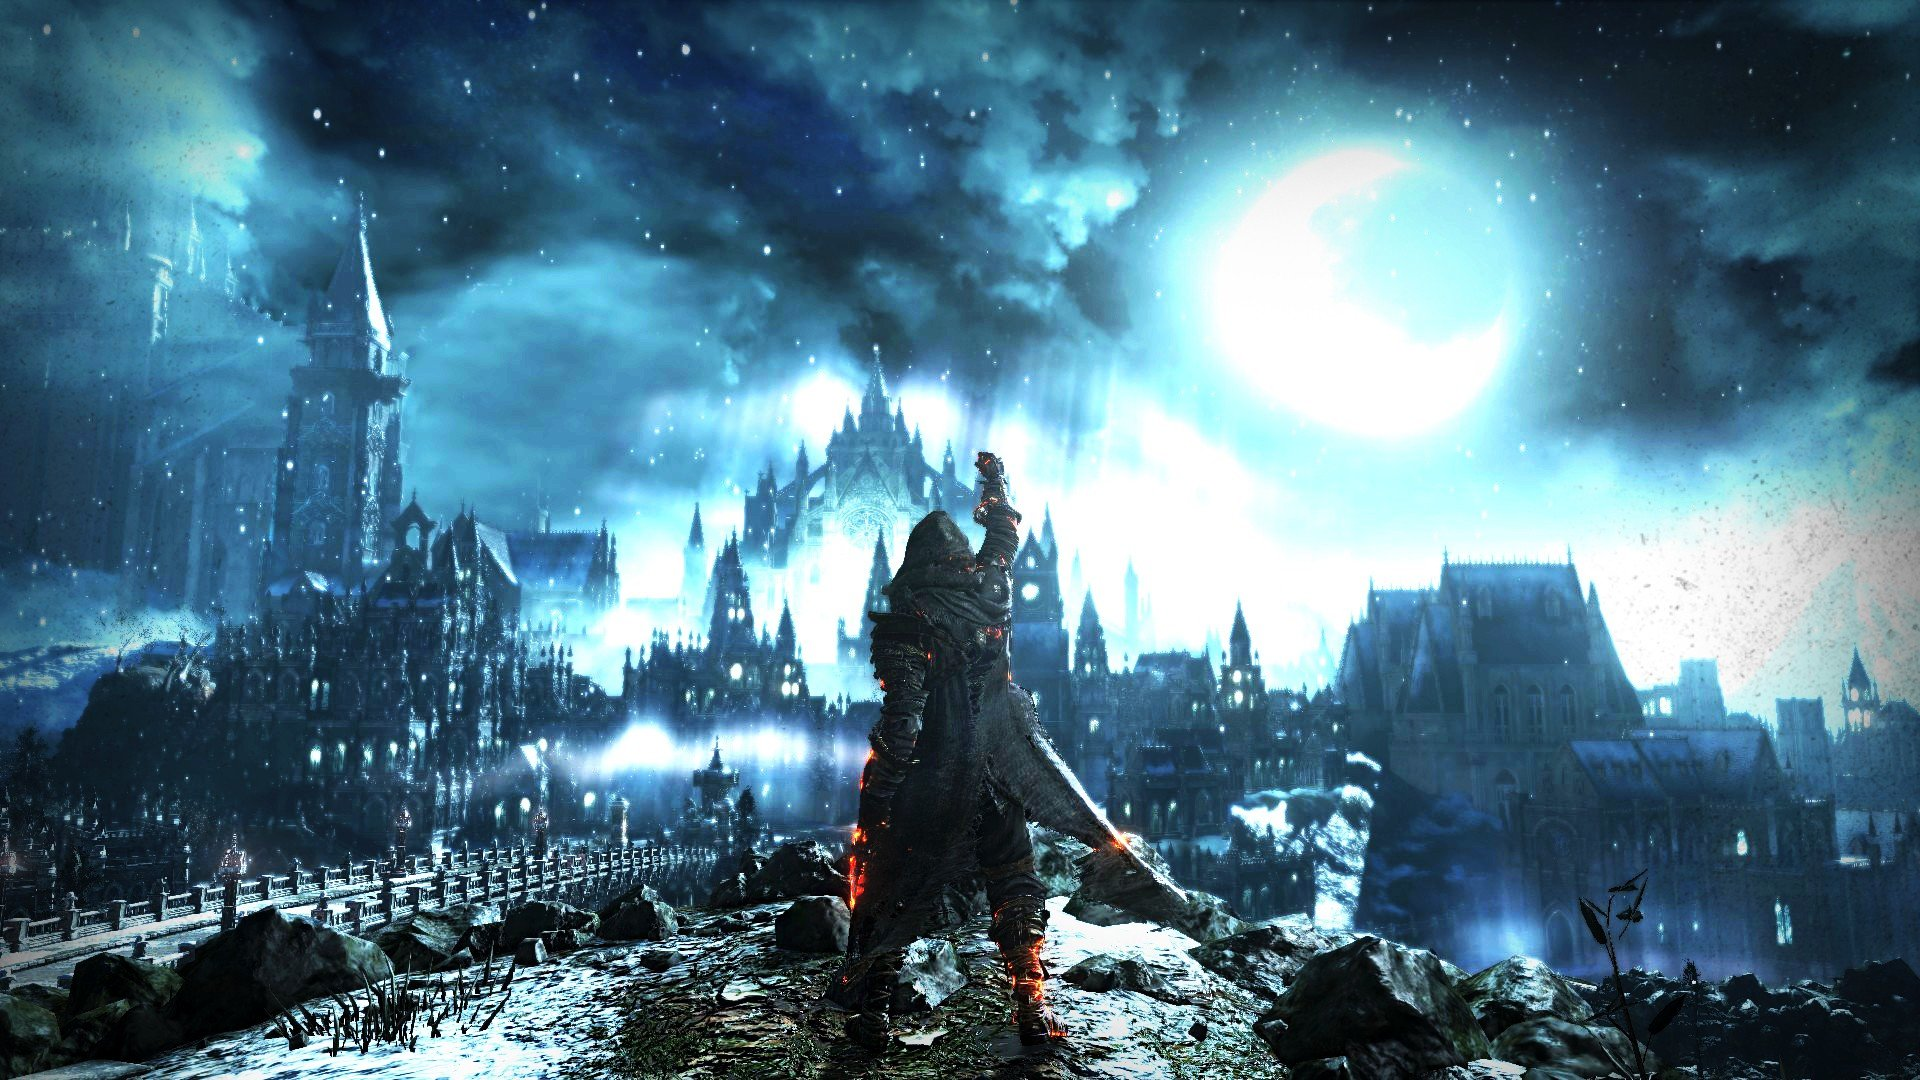 Dark Souls 3 Hd Wallpaper: Download Full Hd 1920x1080 Dark Souls 3 Desktop Wallpaper